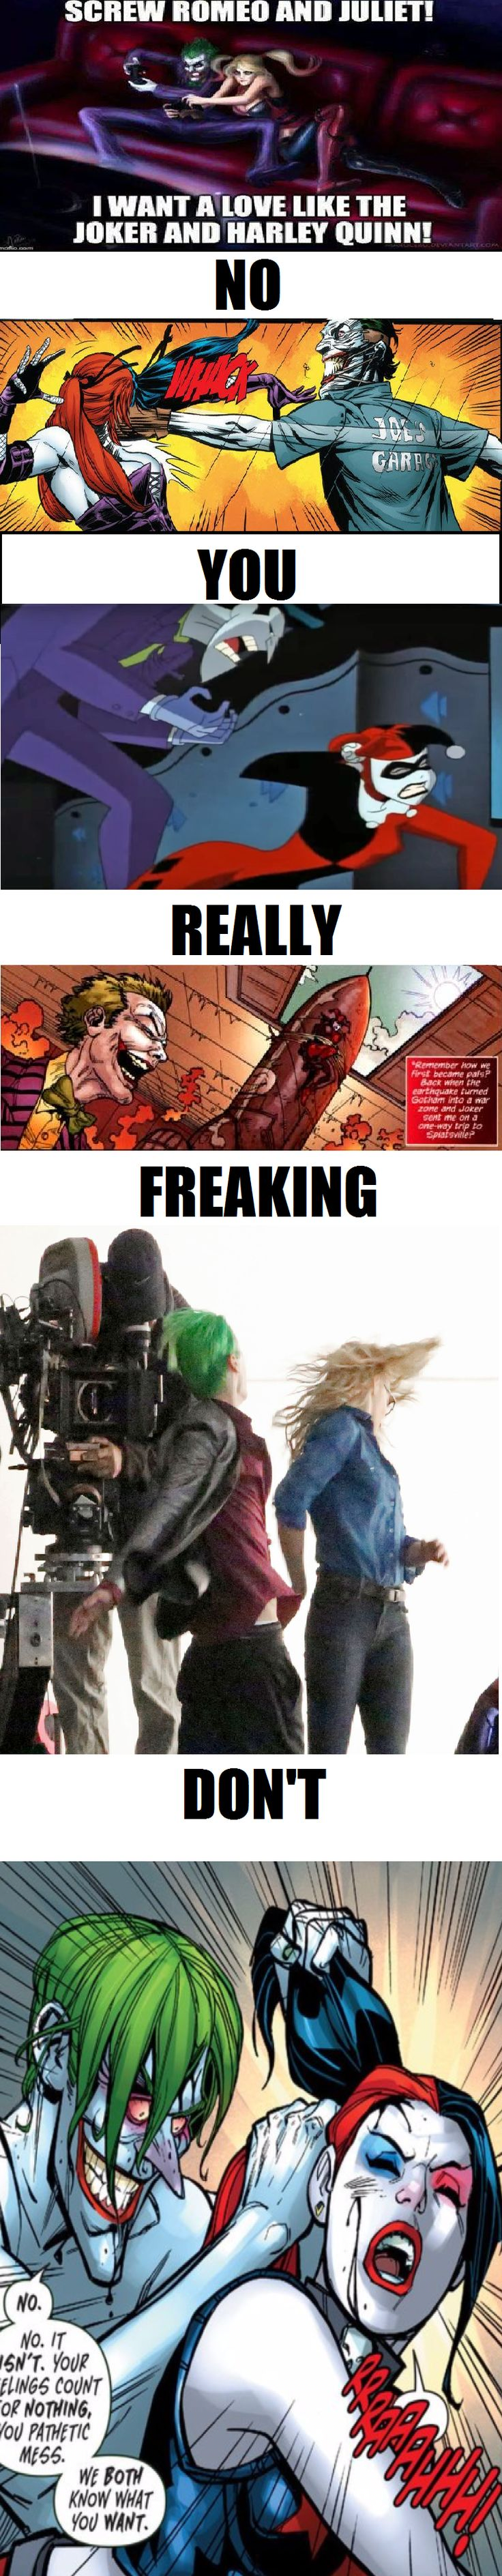 This thou I never got why this was something people were saying for a while.  Romeo and Juliet isn't romantic but Joker and Harley Quinn is at best toxic and destructive.